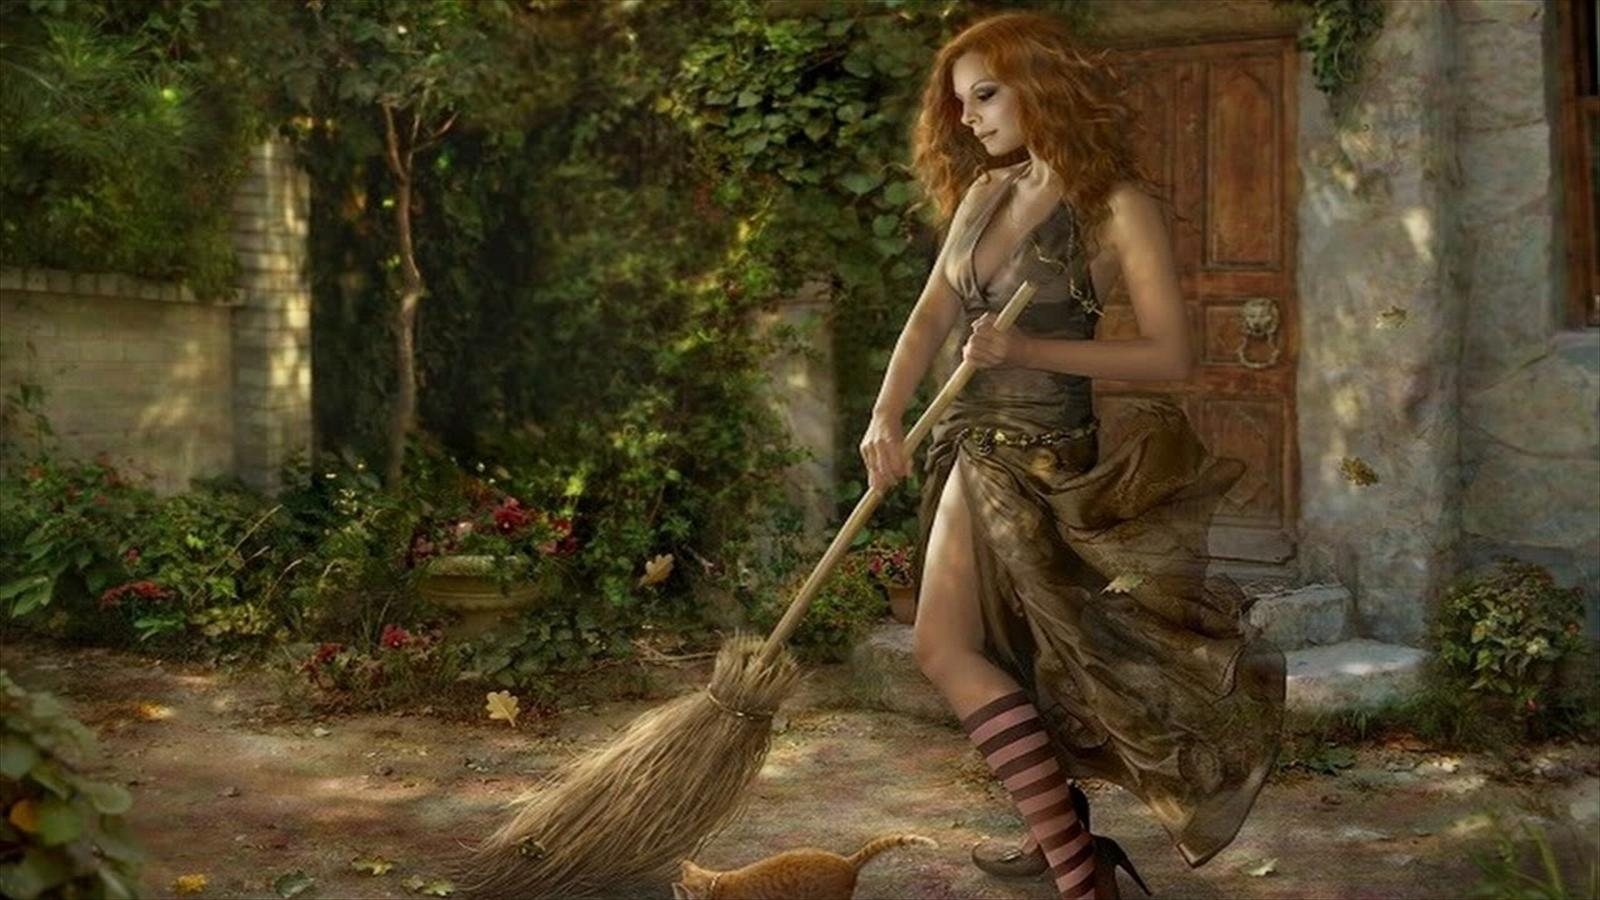 Beautiful Witches Wallpaper, 47 Witches Gallery of Images, NMgnCP